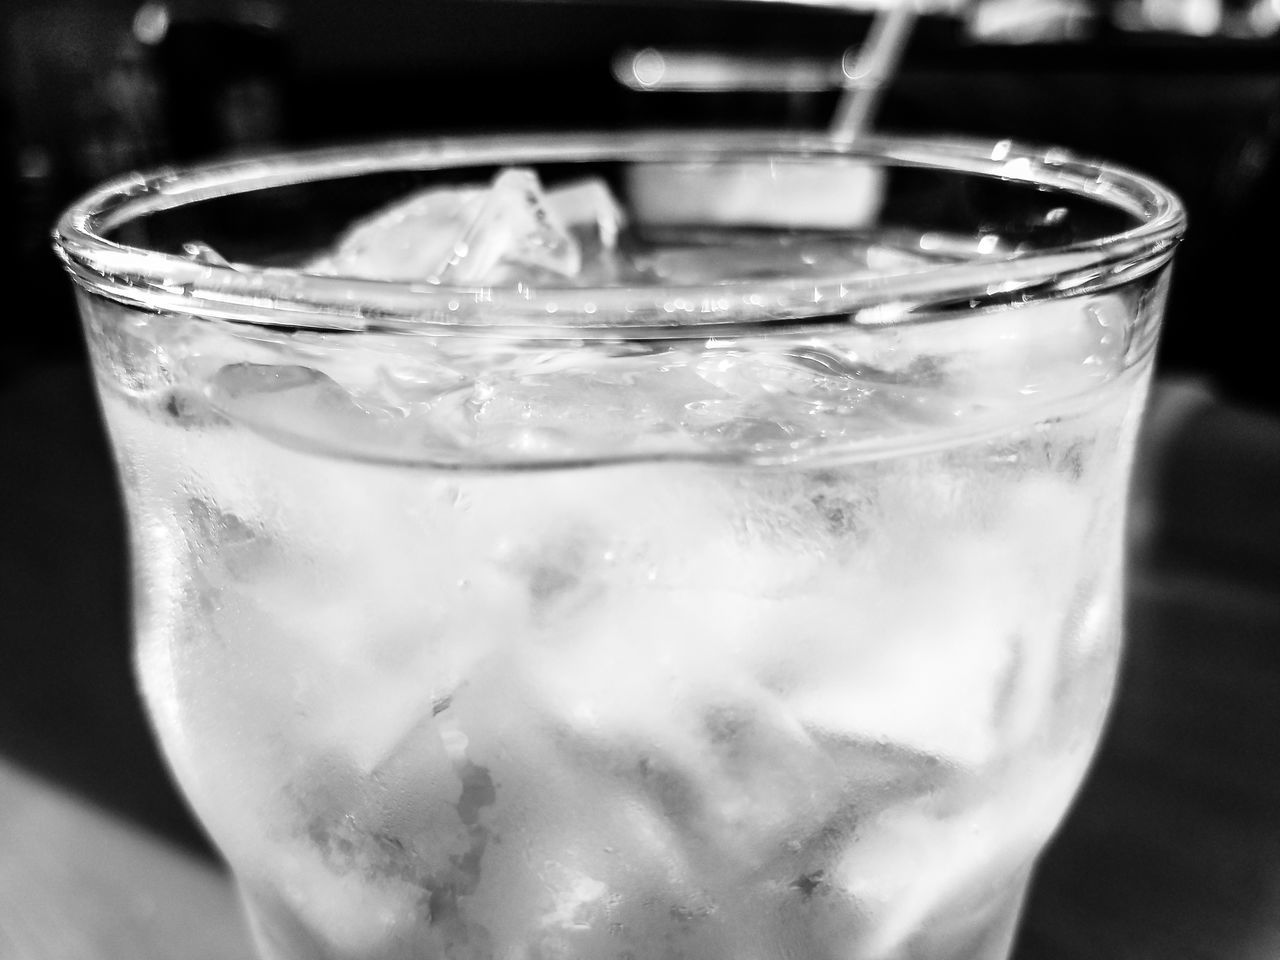 hungry in the morning Black And White Close-up Cold Temperature Day Drink Drinking Glass Food And Drink Freshness Ice Ice Cube Indoors  No People Refreshment Water